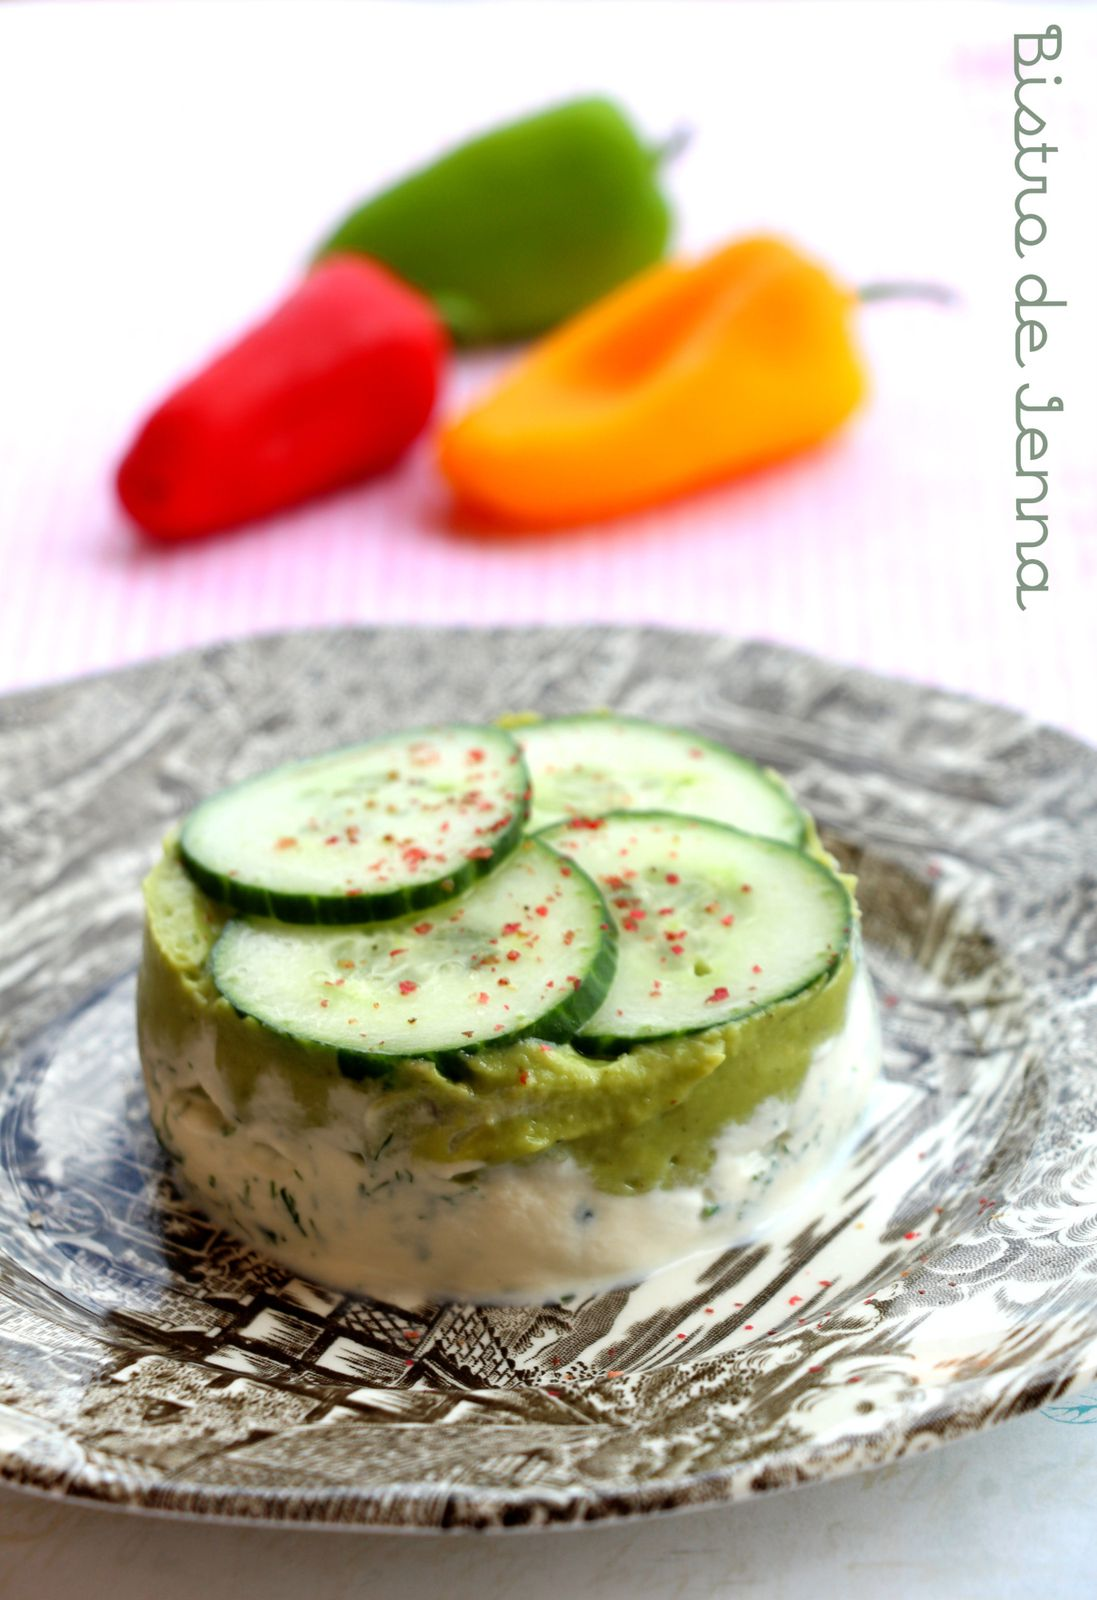 Cheesecake ricotta et avocat